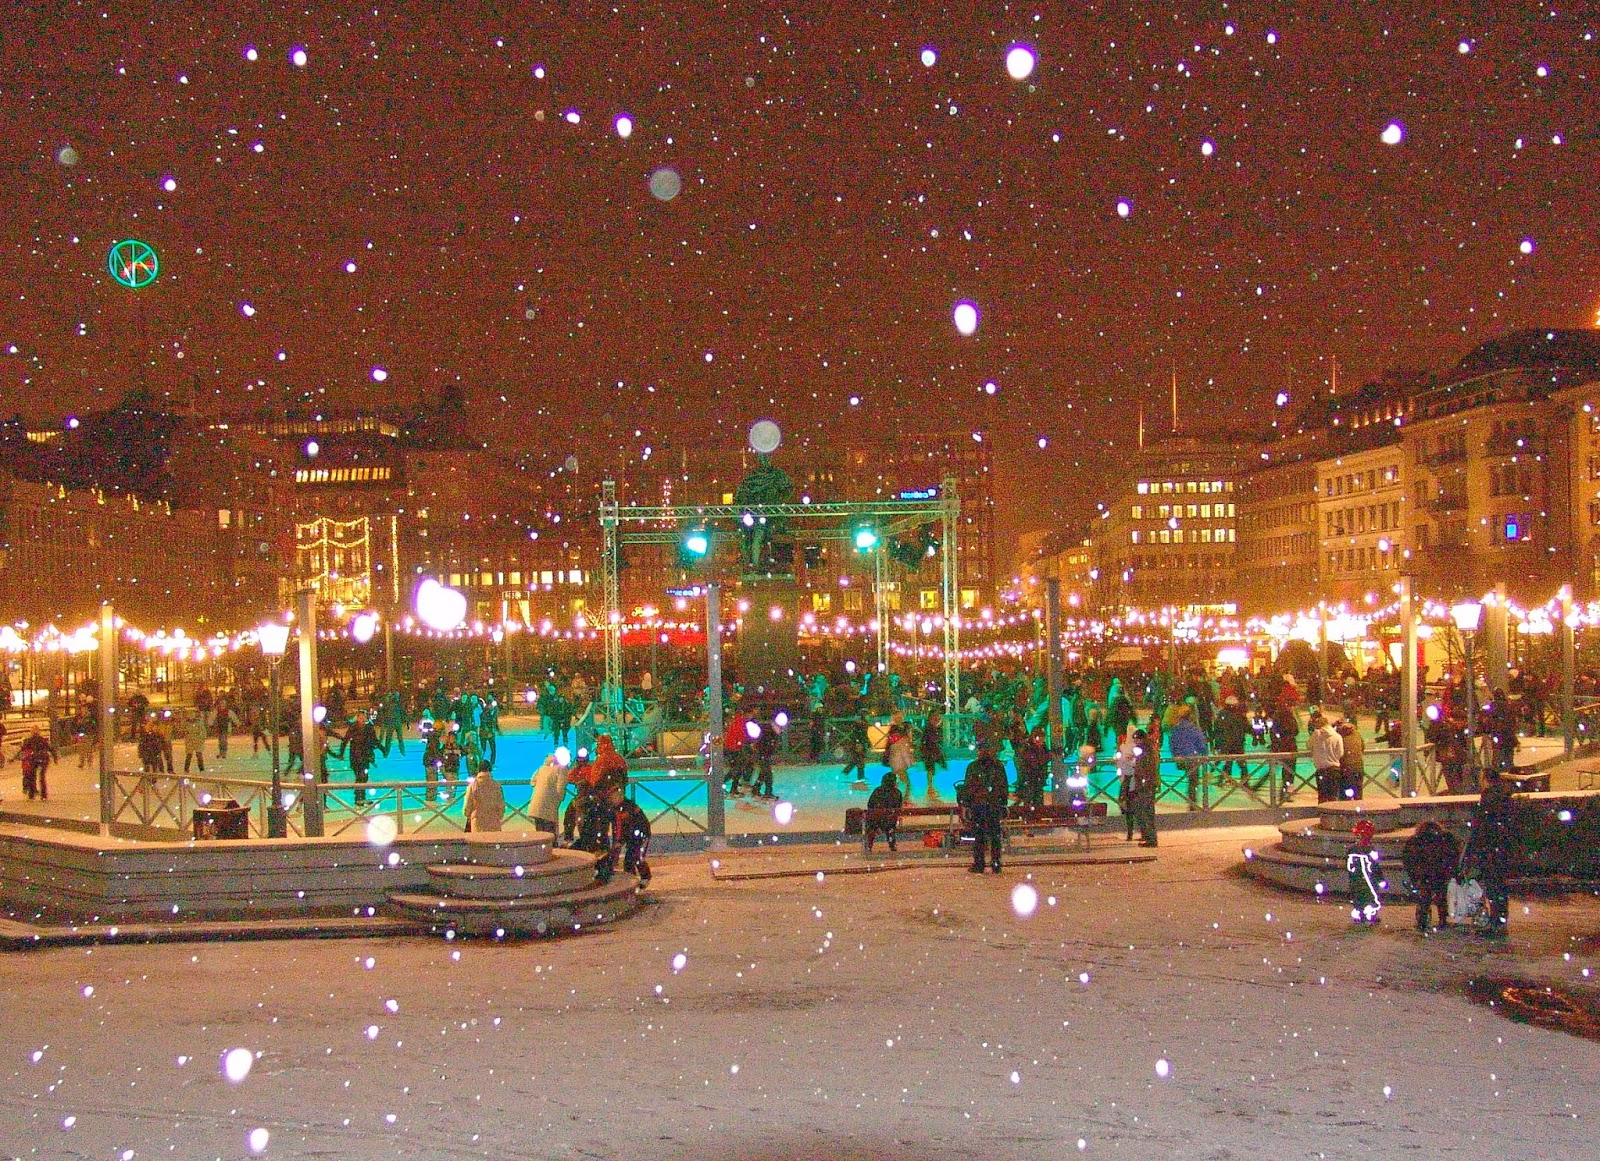 The Stockholm Tourist: November 2013